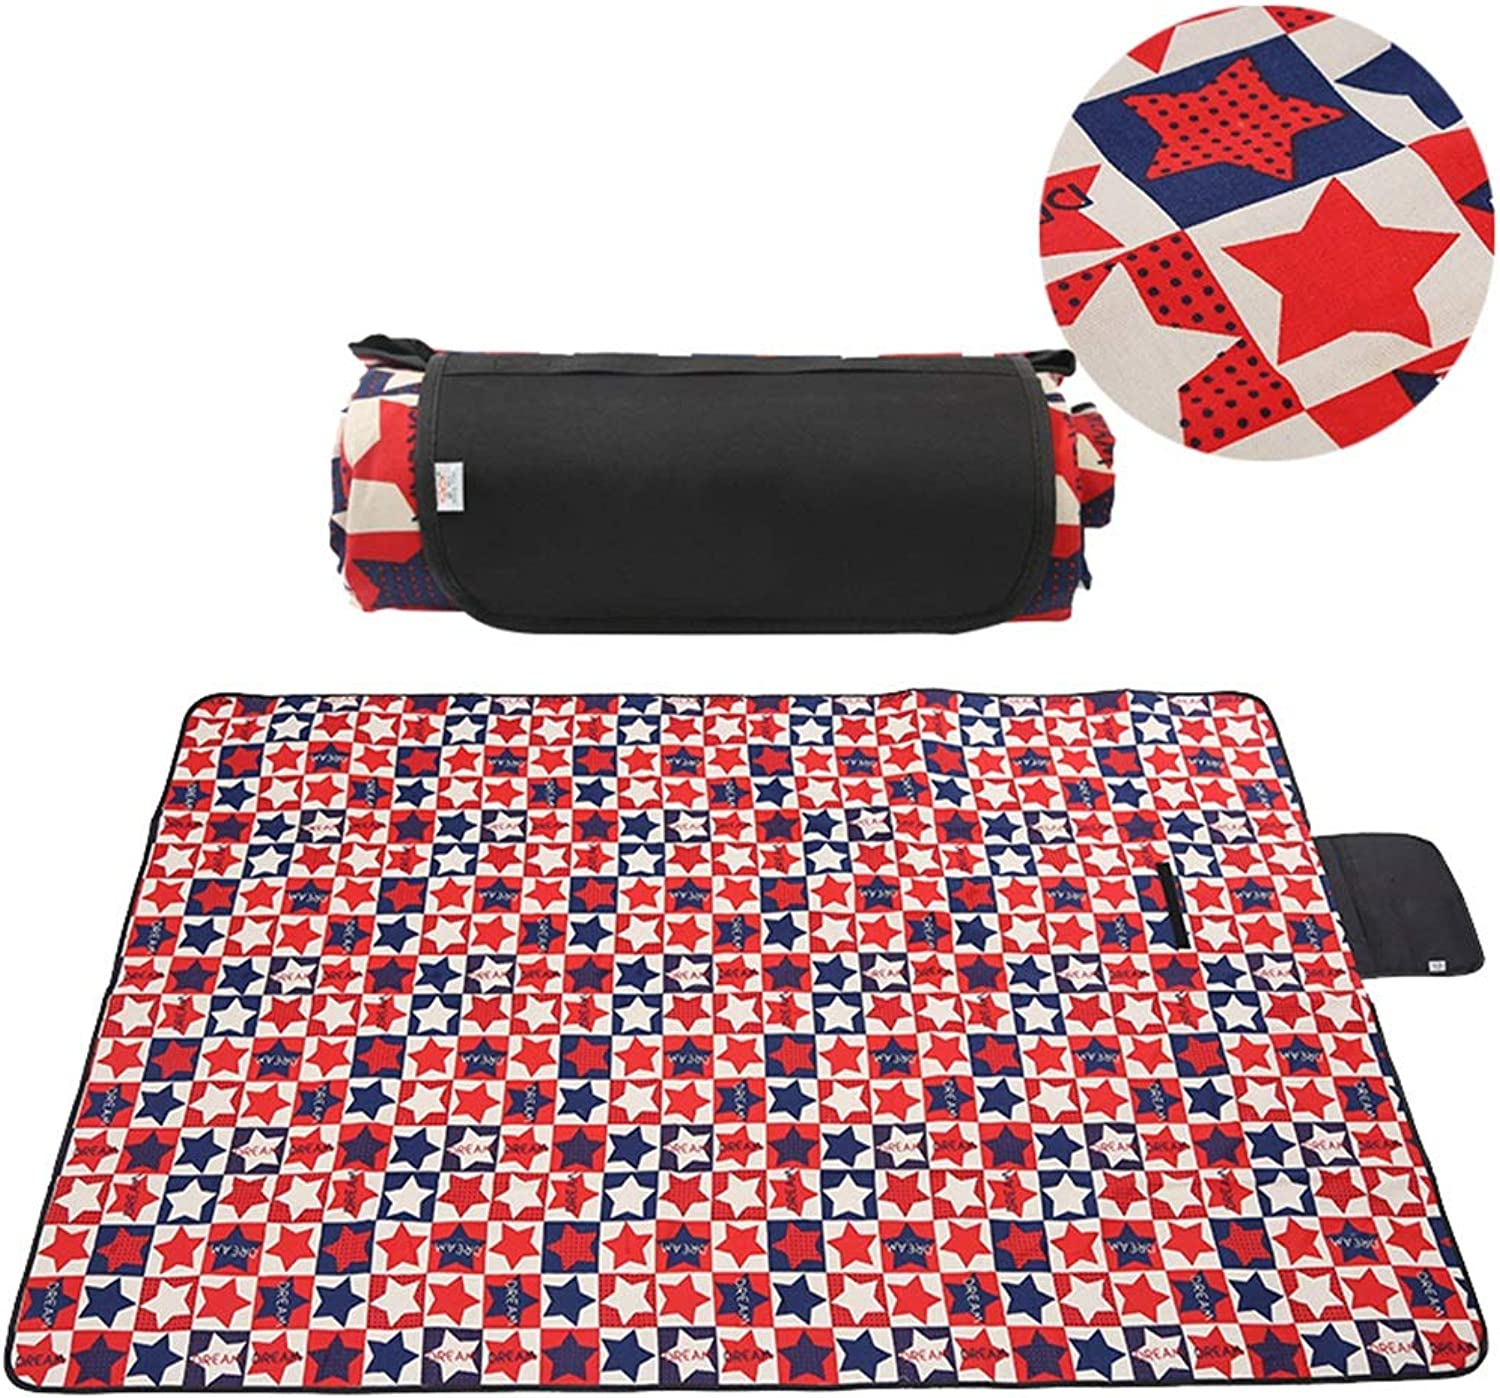 Picnic mat 200 X 145 cm Extra Large Waterproof, Portable Folding Sandproof Beach Mat for Family Travel BBQ